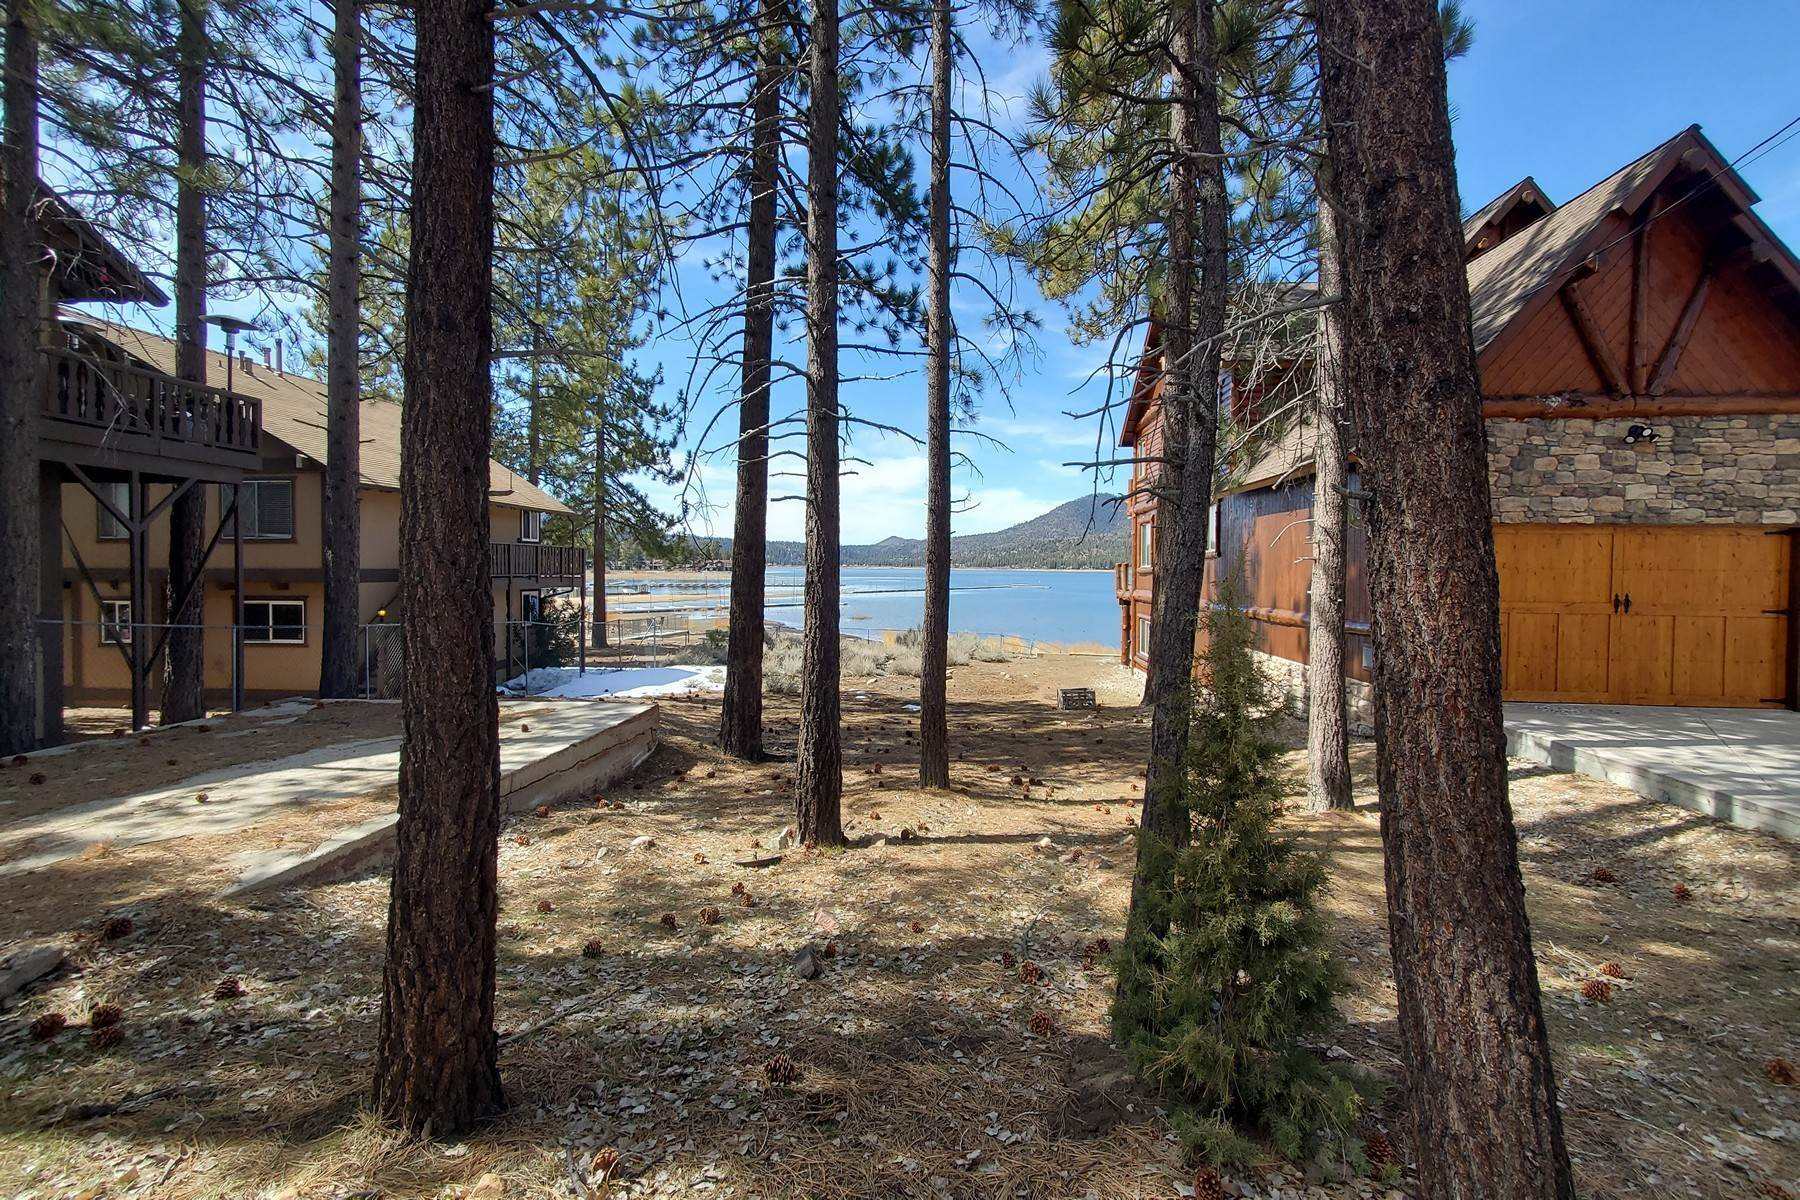 Land for Sale at 40598 Simonds Drive, Big Bear Lake, CA 92315 40598 Simonds Drive Big Bear Lake, California 92315 United States